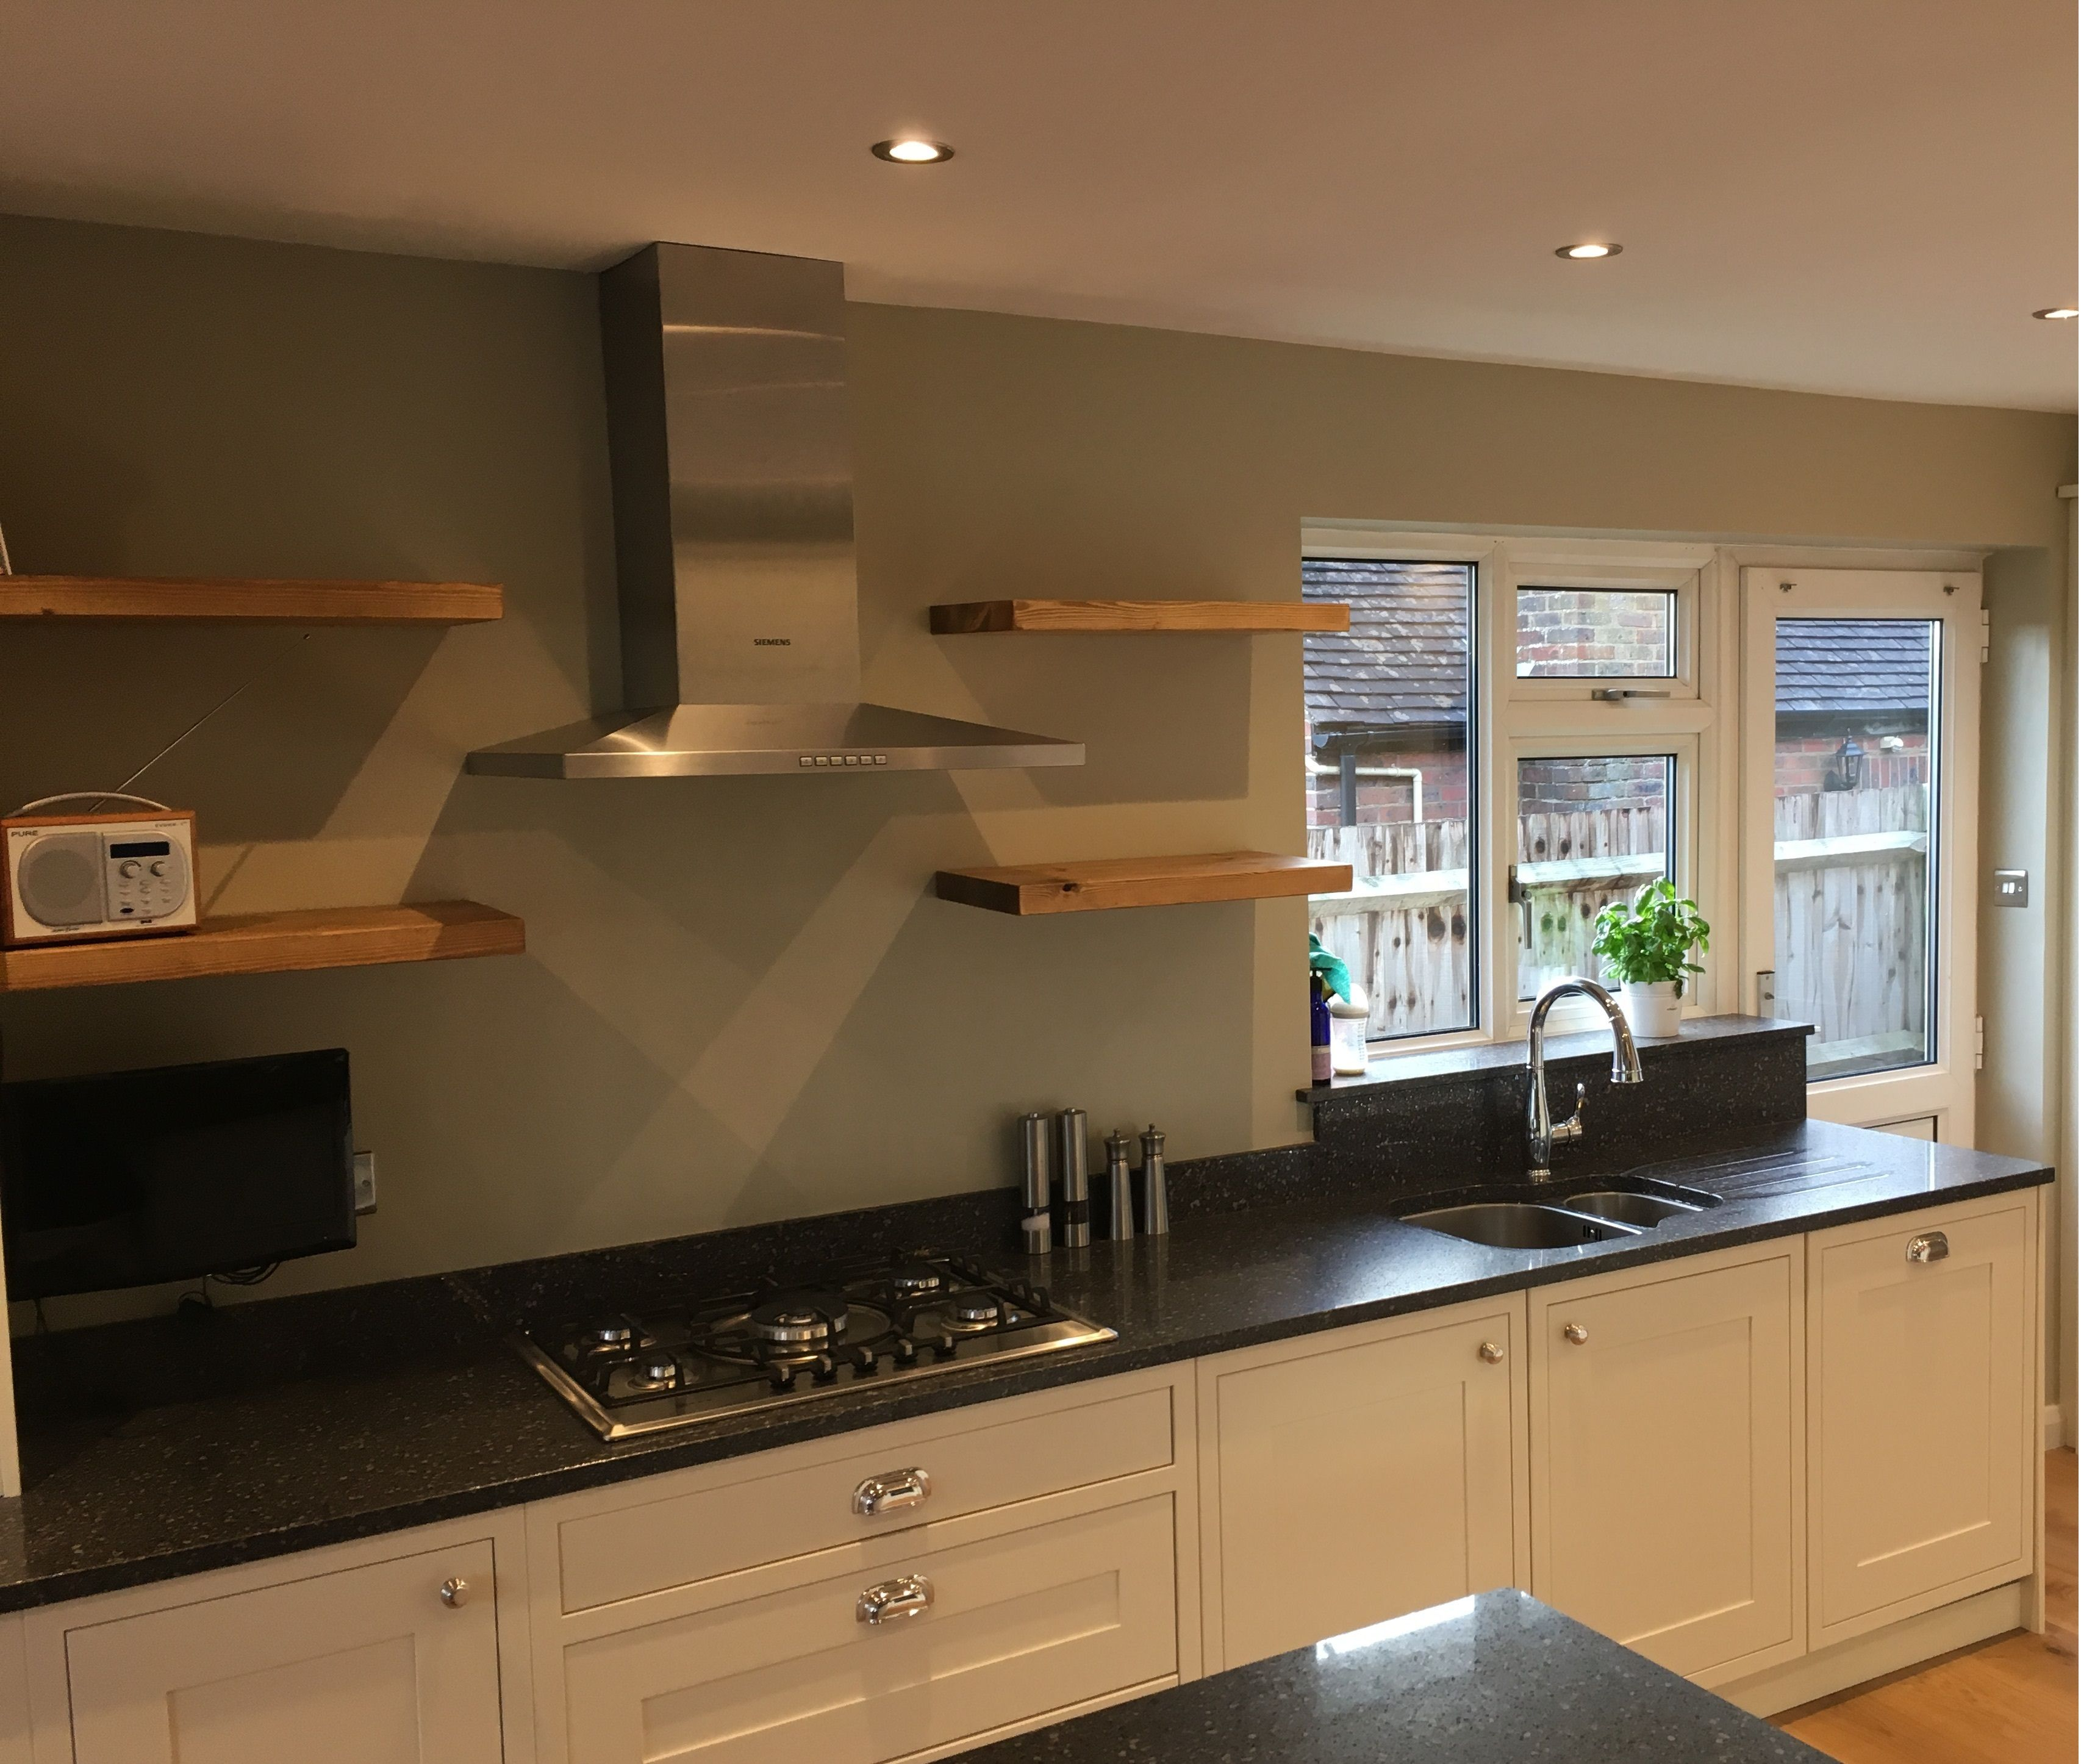 Separate kitchen, dining and living room converted into a